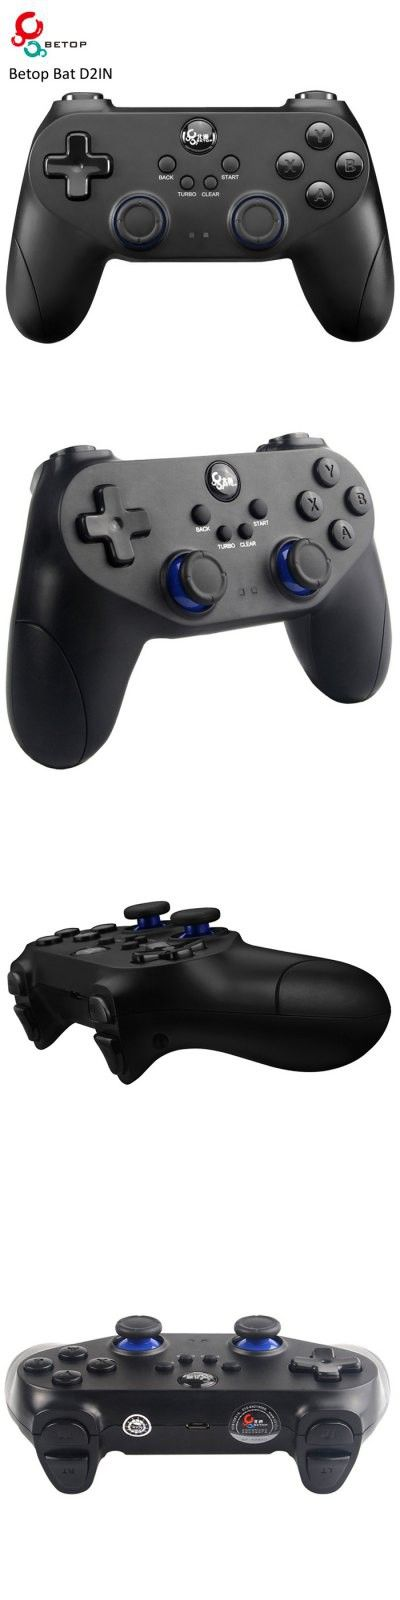 (*** http://BubbleCraze.org - New Android/iPhone game is wickedly addicting! ***)  iPhone Game Accessories | Betop Bat D2IN Wireless Bluetooth 4.0 Gamepad Game Controller